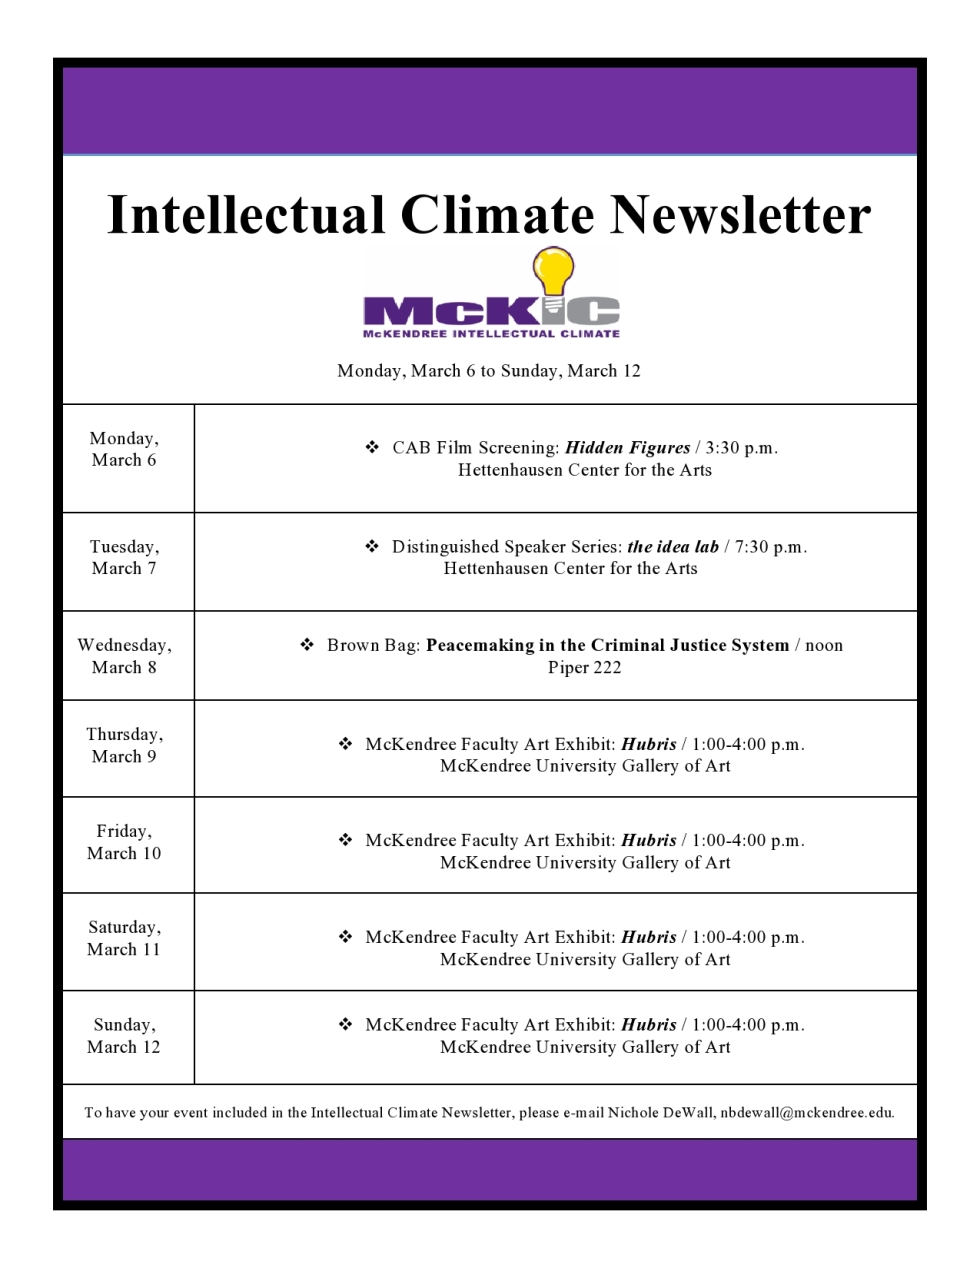 Intellectual Climate Newsletter 3.6.17-page0001